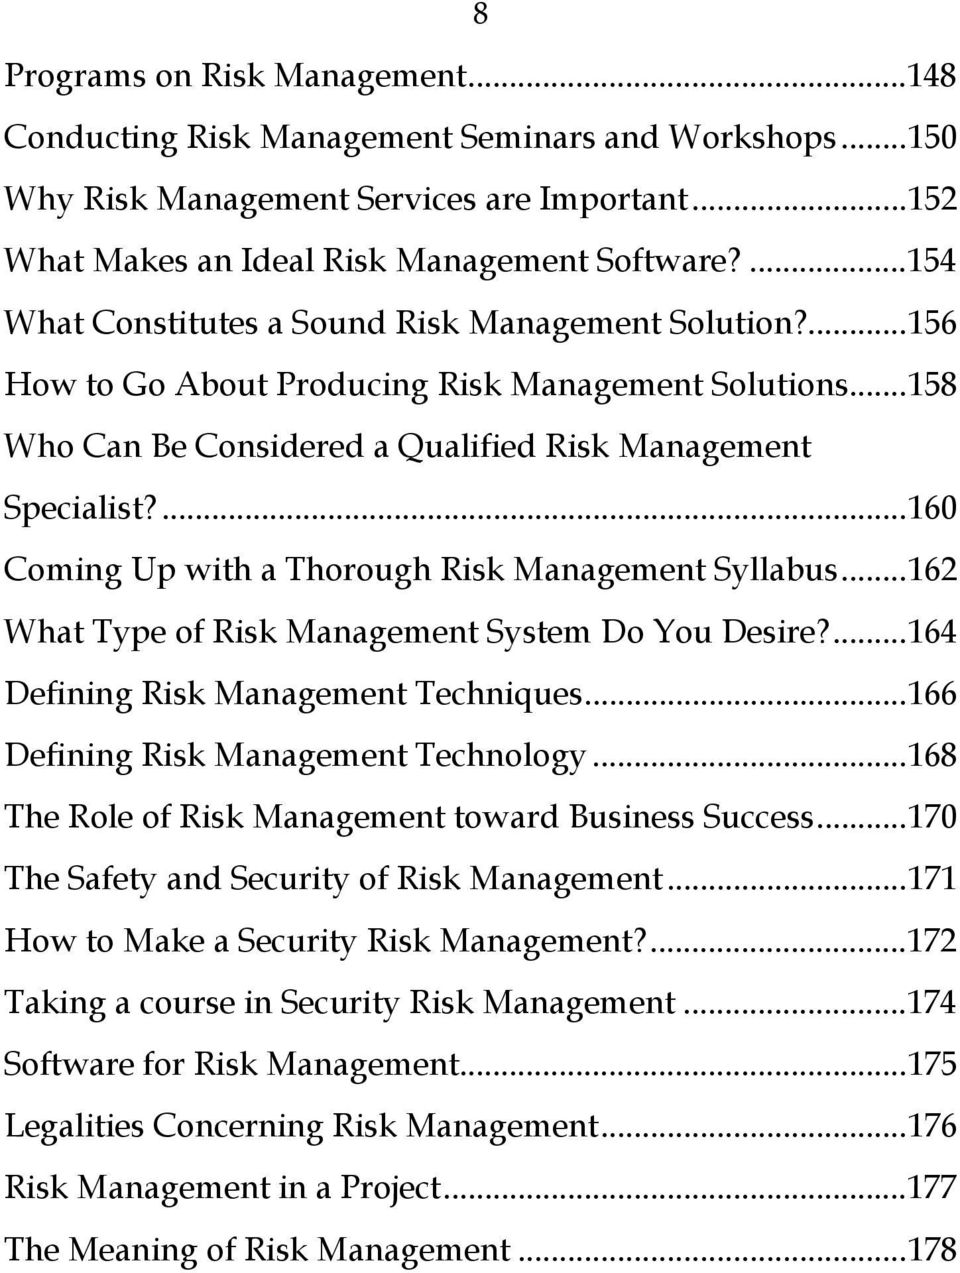 ...160 Coming Up with a Thorough Risk Management Syllabus...162 What Type of Risk Management System Do You Desire?...164 Defining Risk Management Techniques...166 Defining Risk Management Technology.